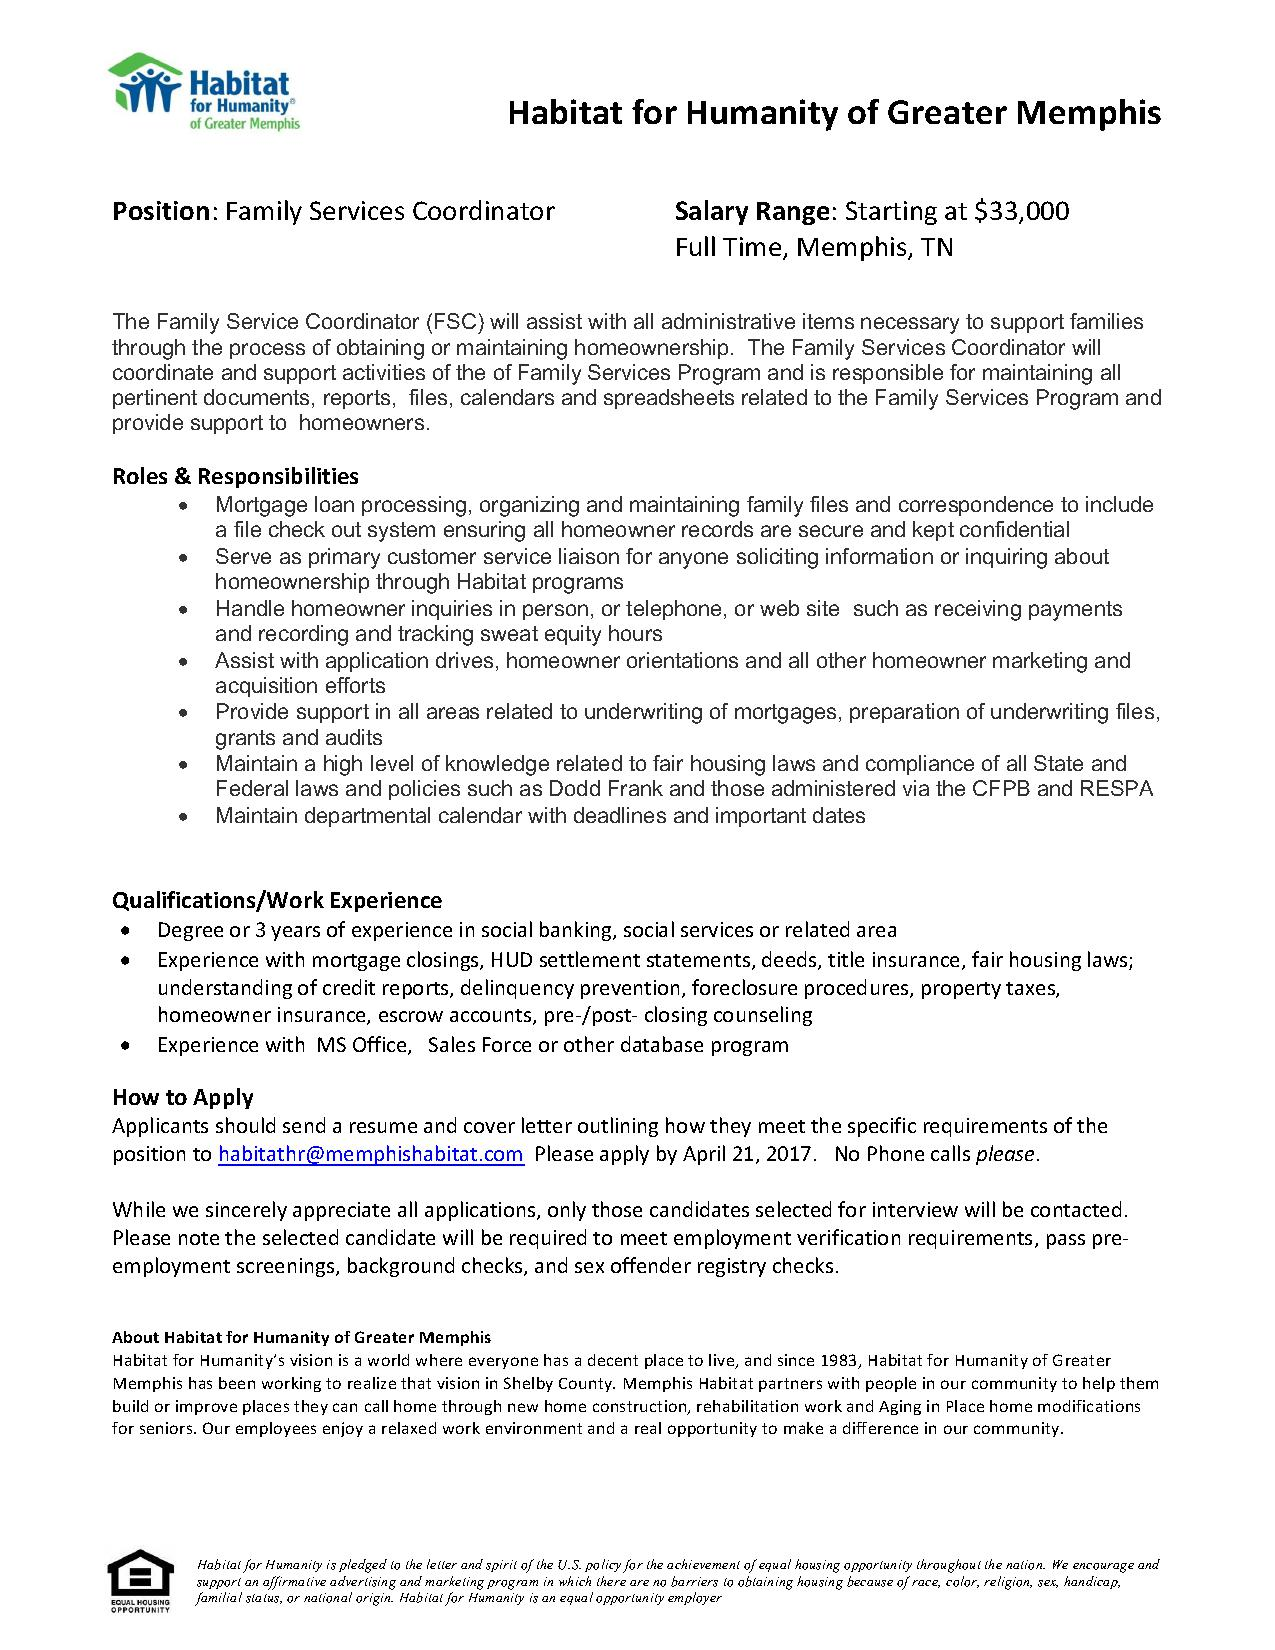 Family Services Coordinator Habitat For Humanity Job